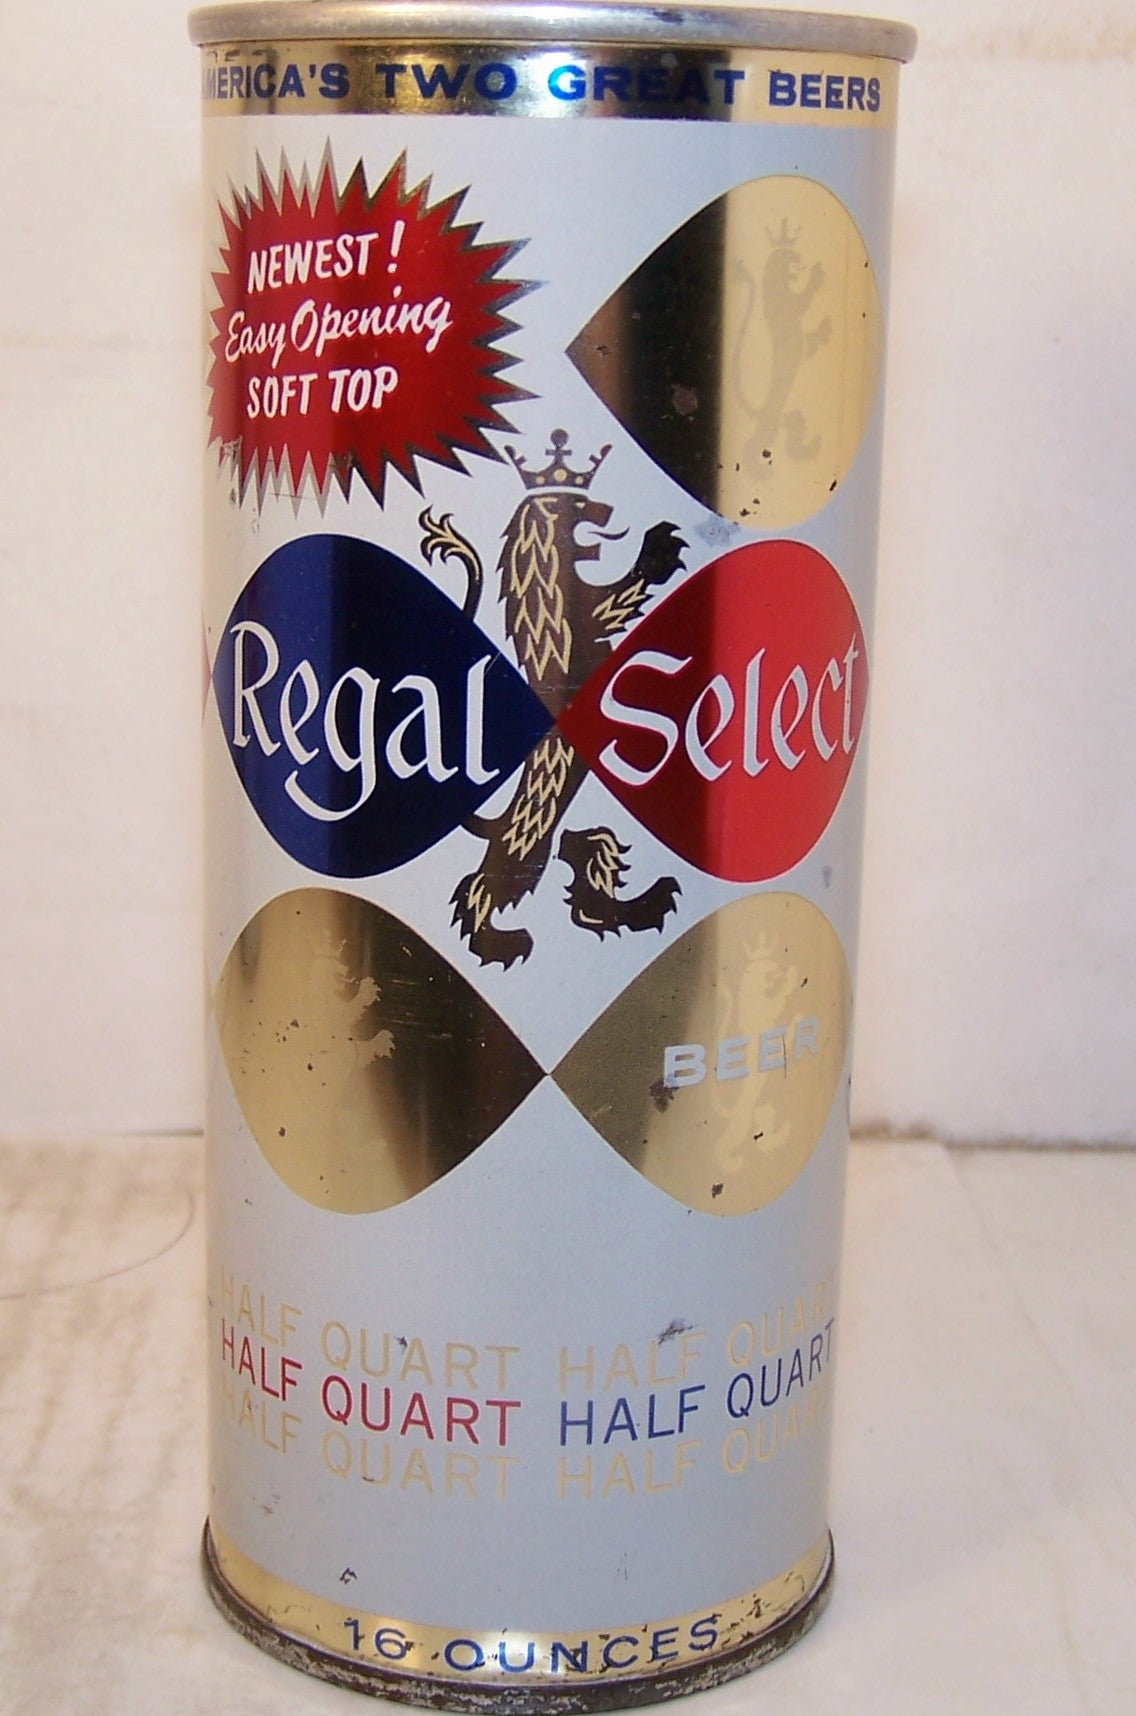 Regal Select Beer, Newest Easy Opening Soft Top, USBC 234-24, Grade 1/ 1- Sold on 2/11/15